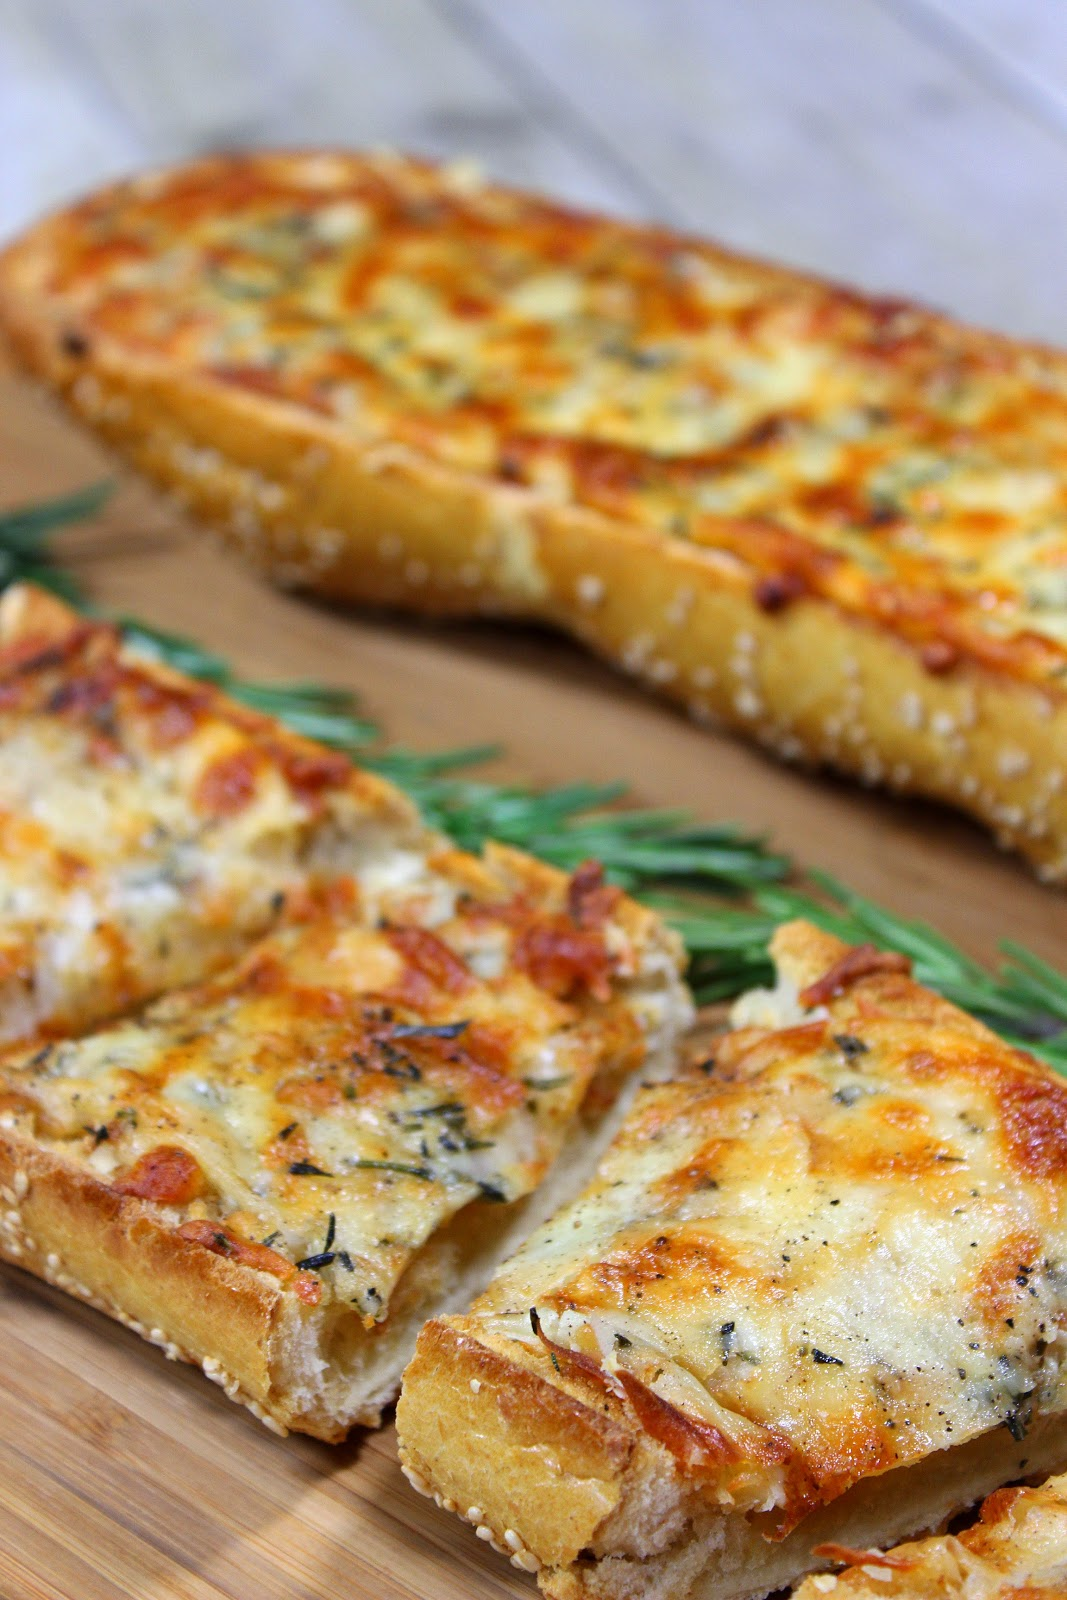 Roasted Garlic Rosemary Cheese Bread works equally well as a delicious appetizer, side dish or meatless entree.